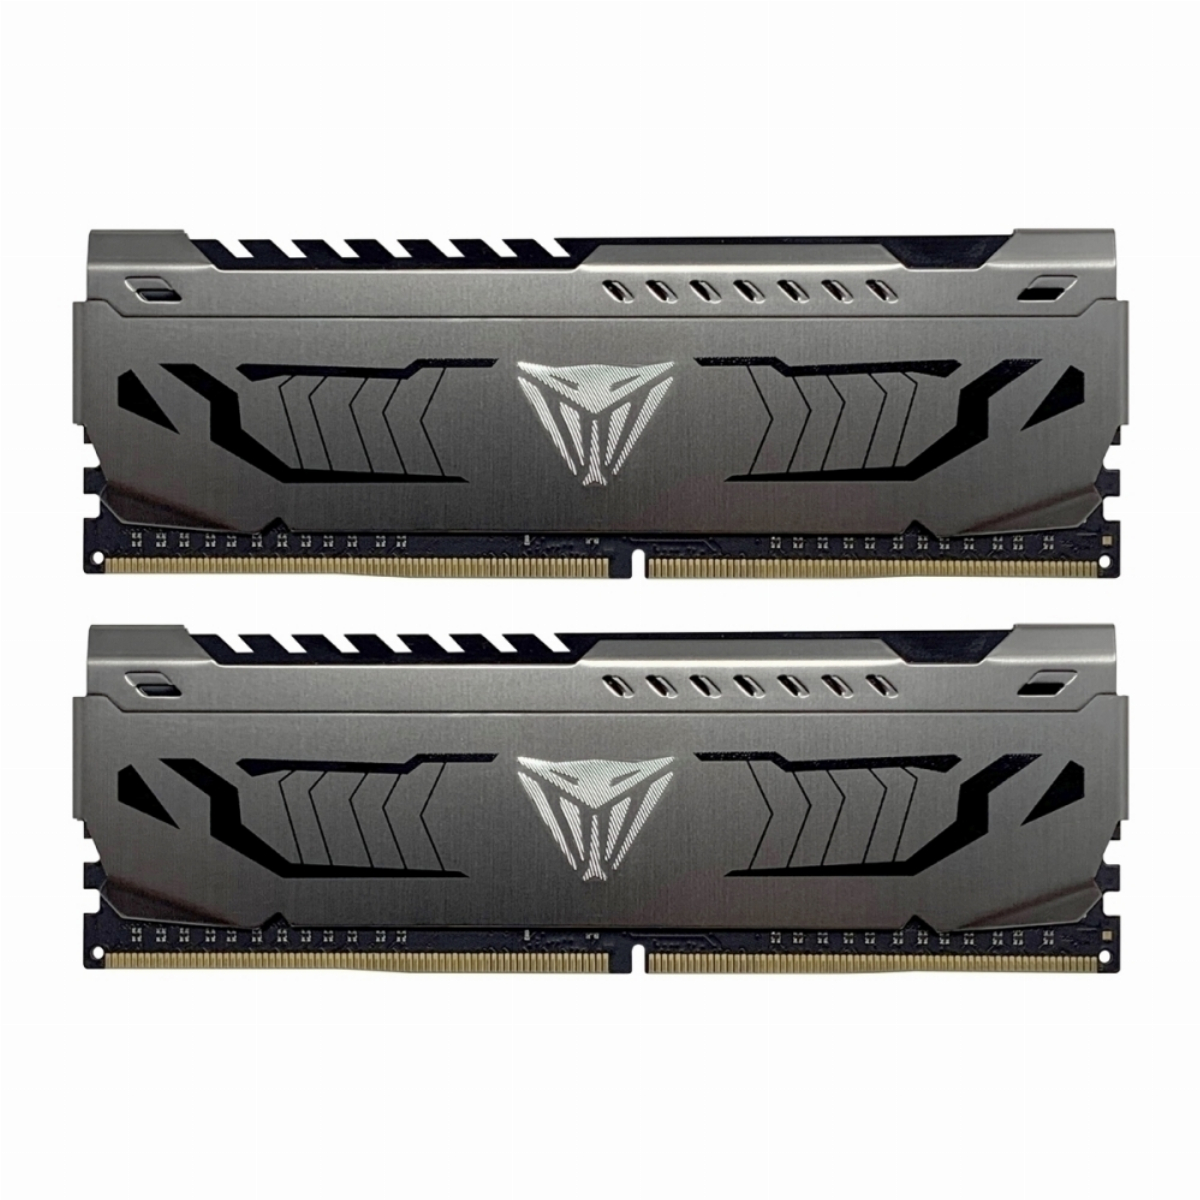 Памет Patriot Viper Steel 64GB (2x32GB) 3600Mhz DDR4 CL18